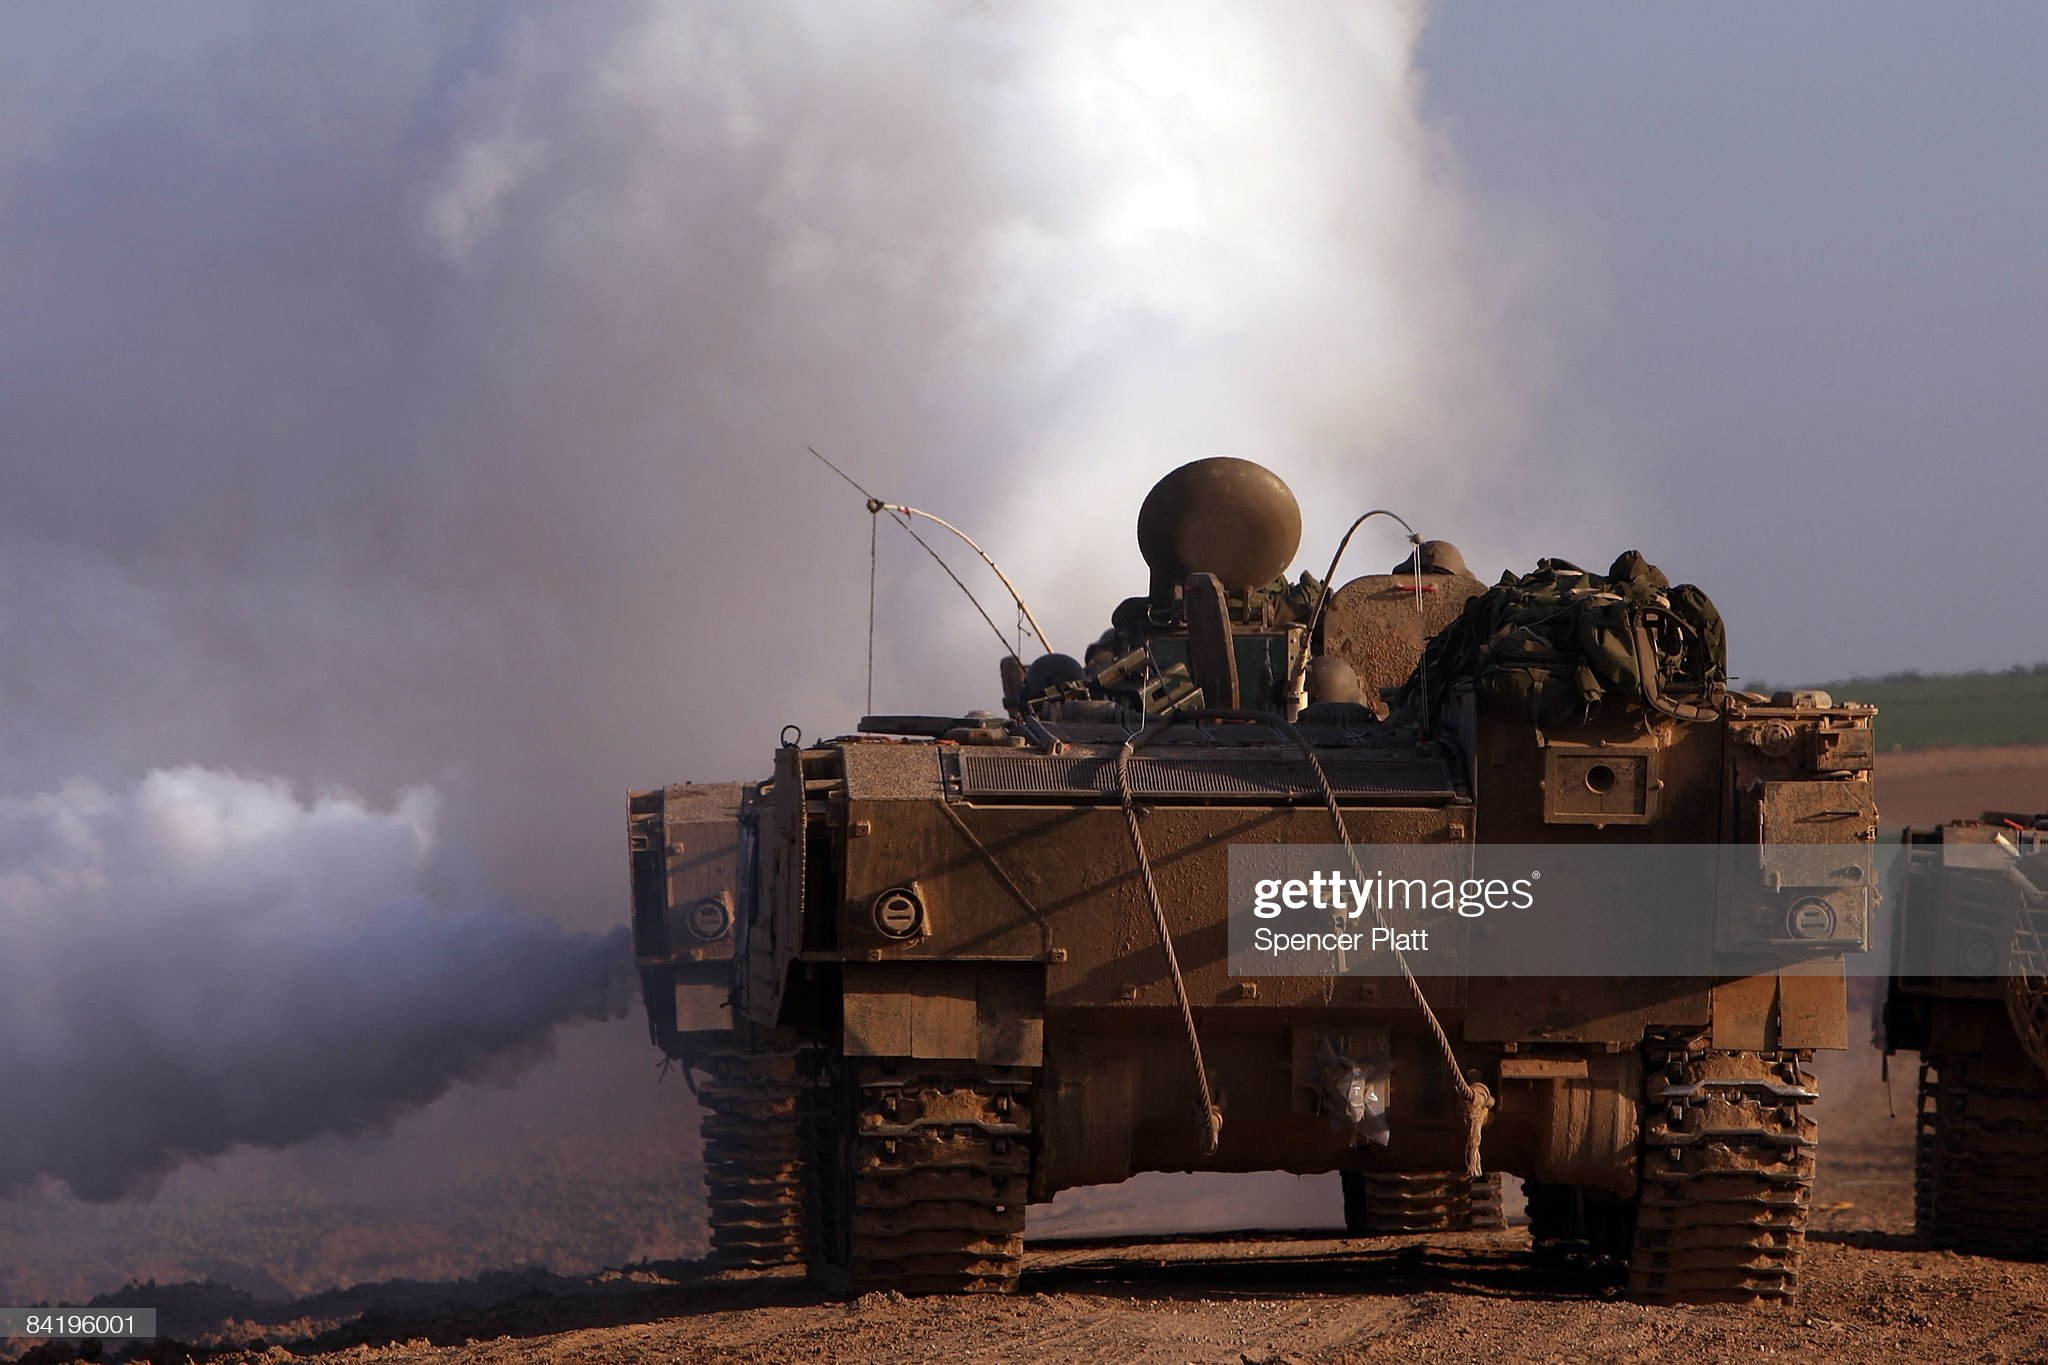 https://media.gettyimages.com/photos/an-israeli-armored-personnel-carrier-drives-down-a-road-during-the-picture-id84196001?s=2048x2048